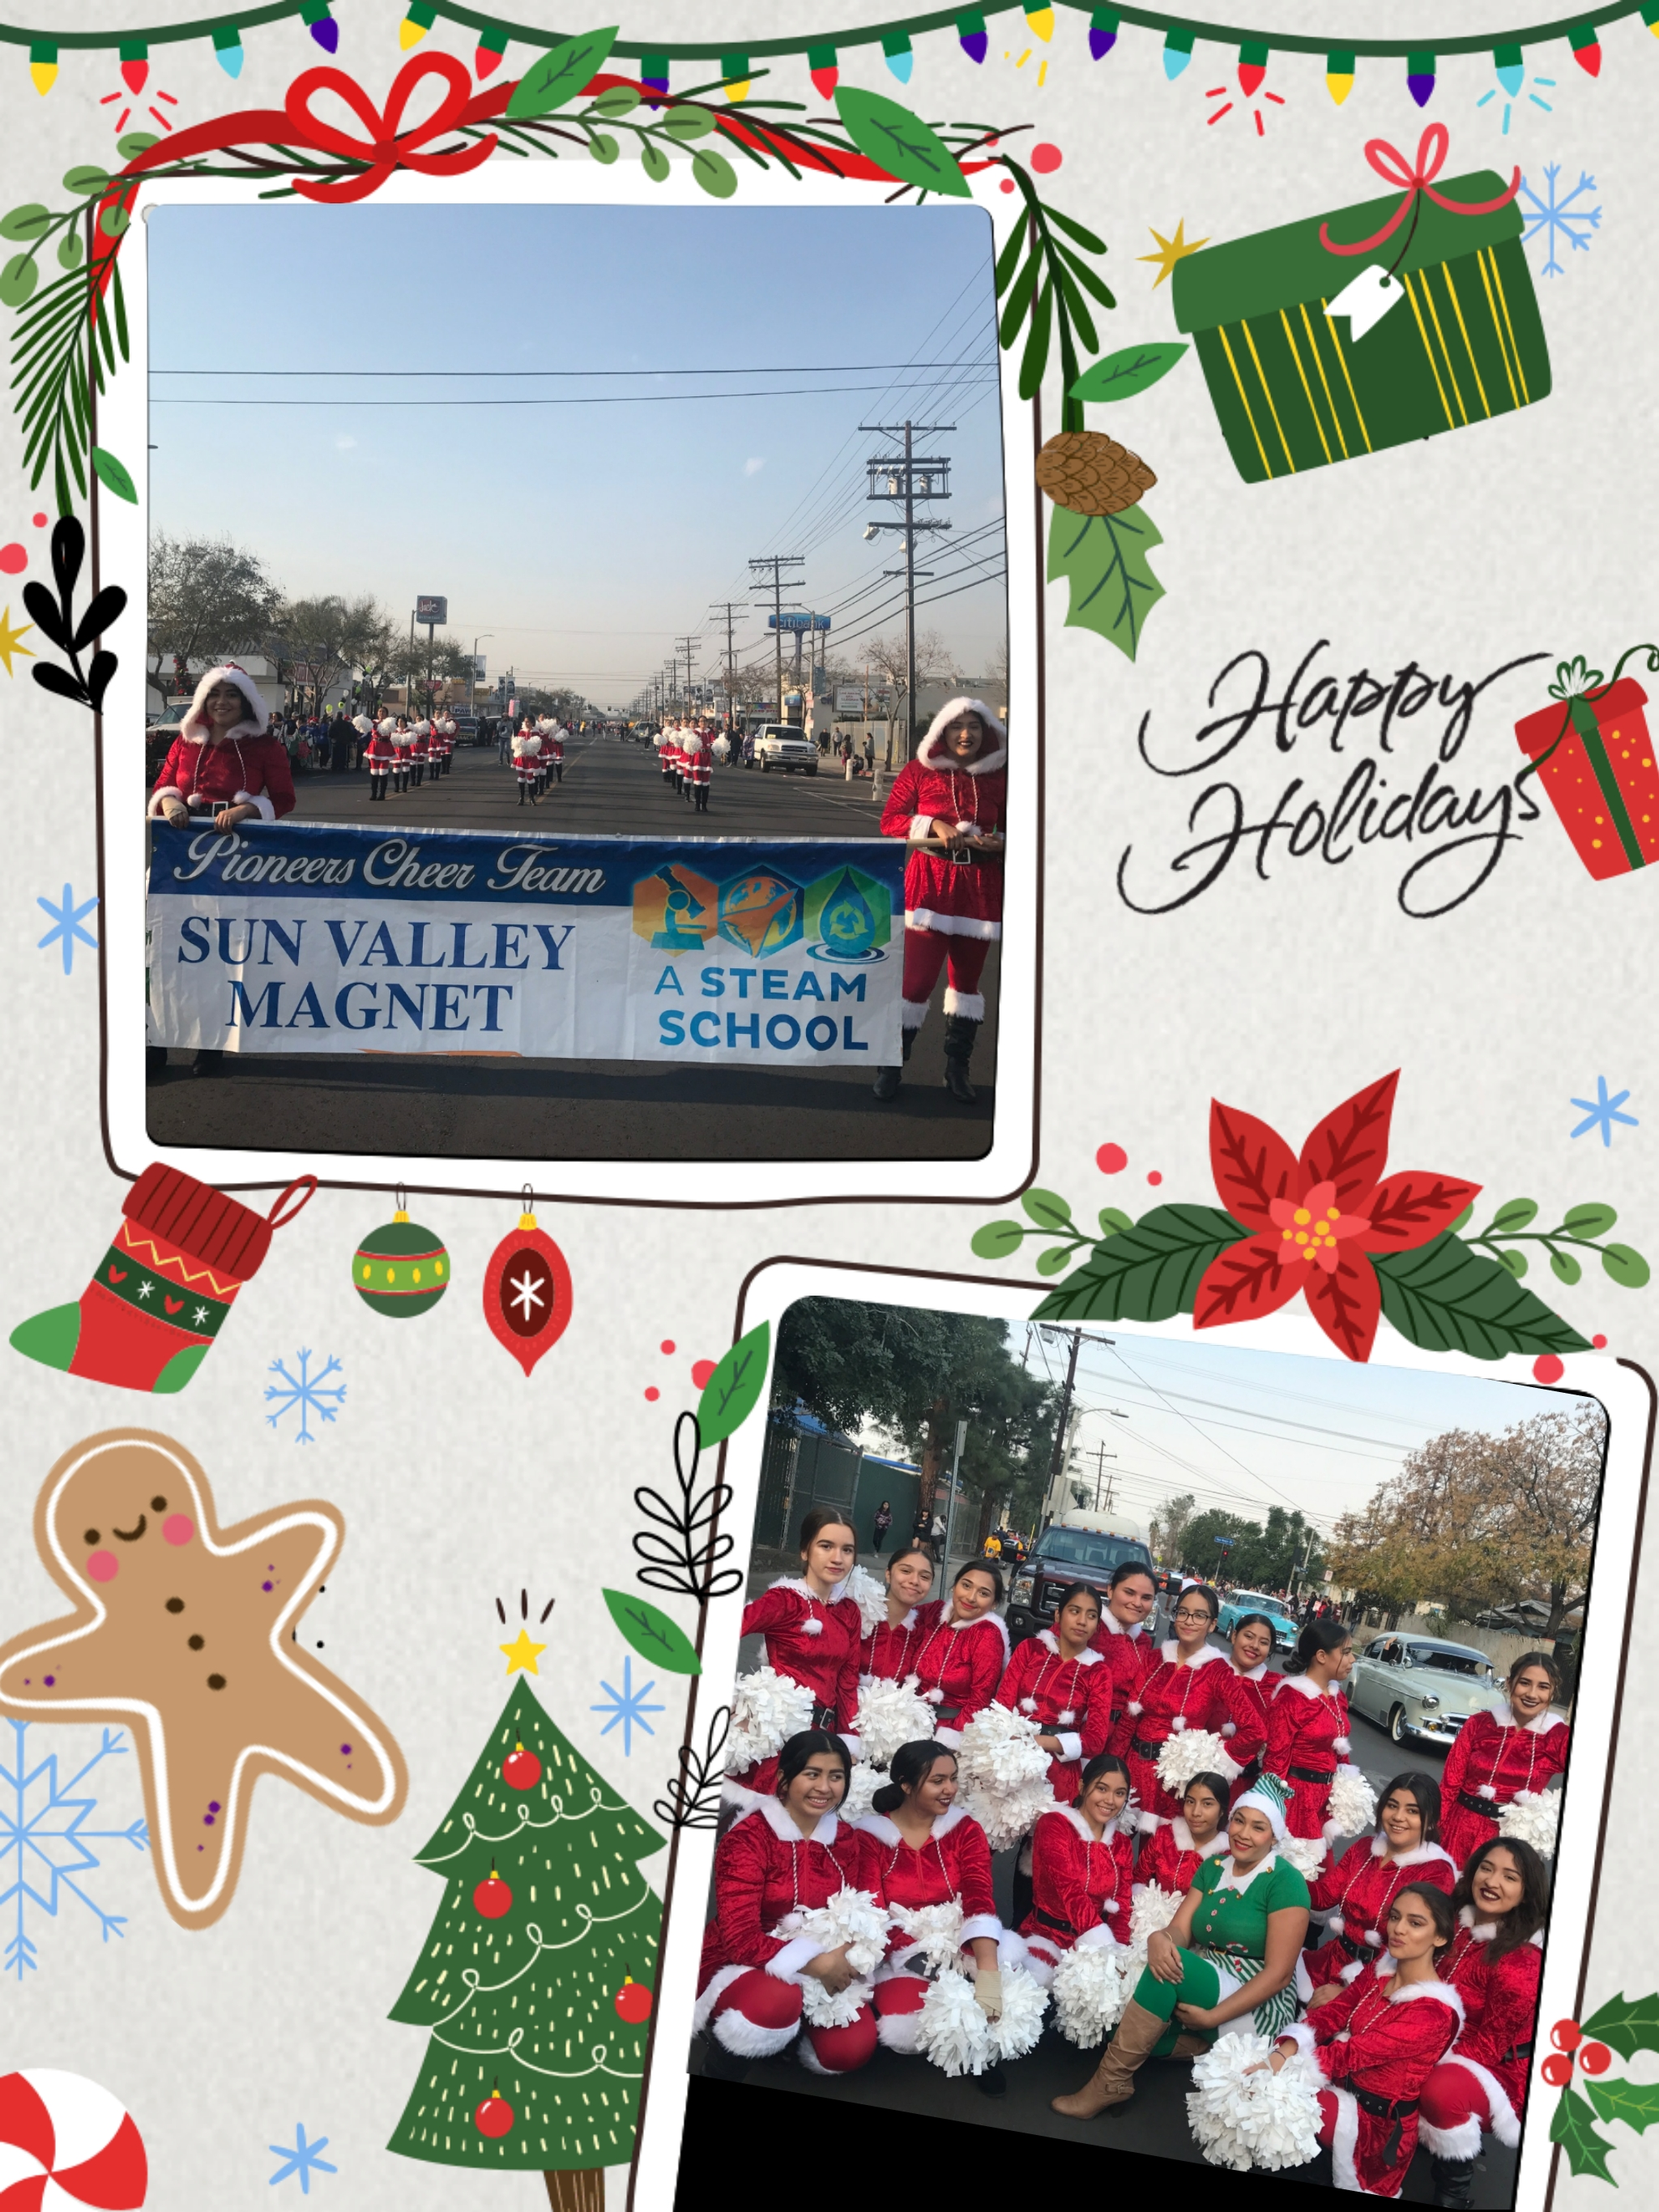 PACOIMA 50TH CHRISTMAS PARADE - 12/16/17